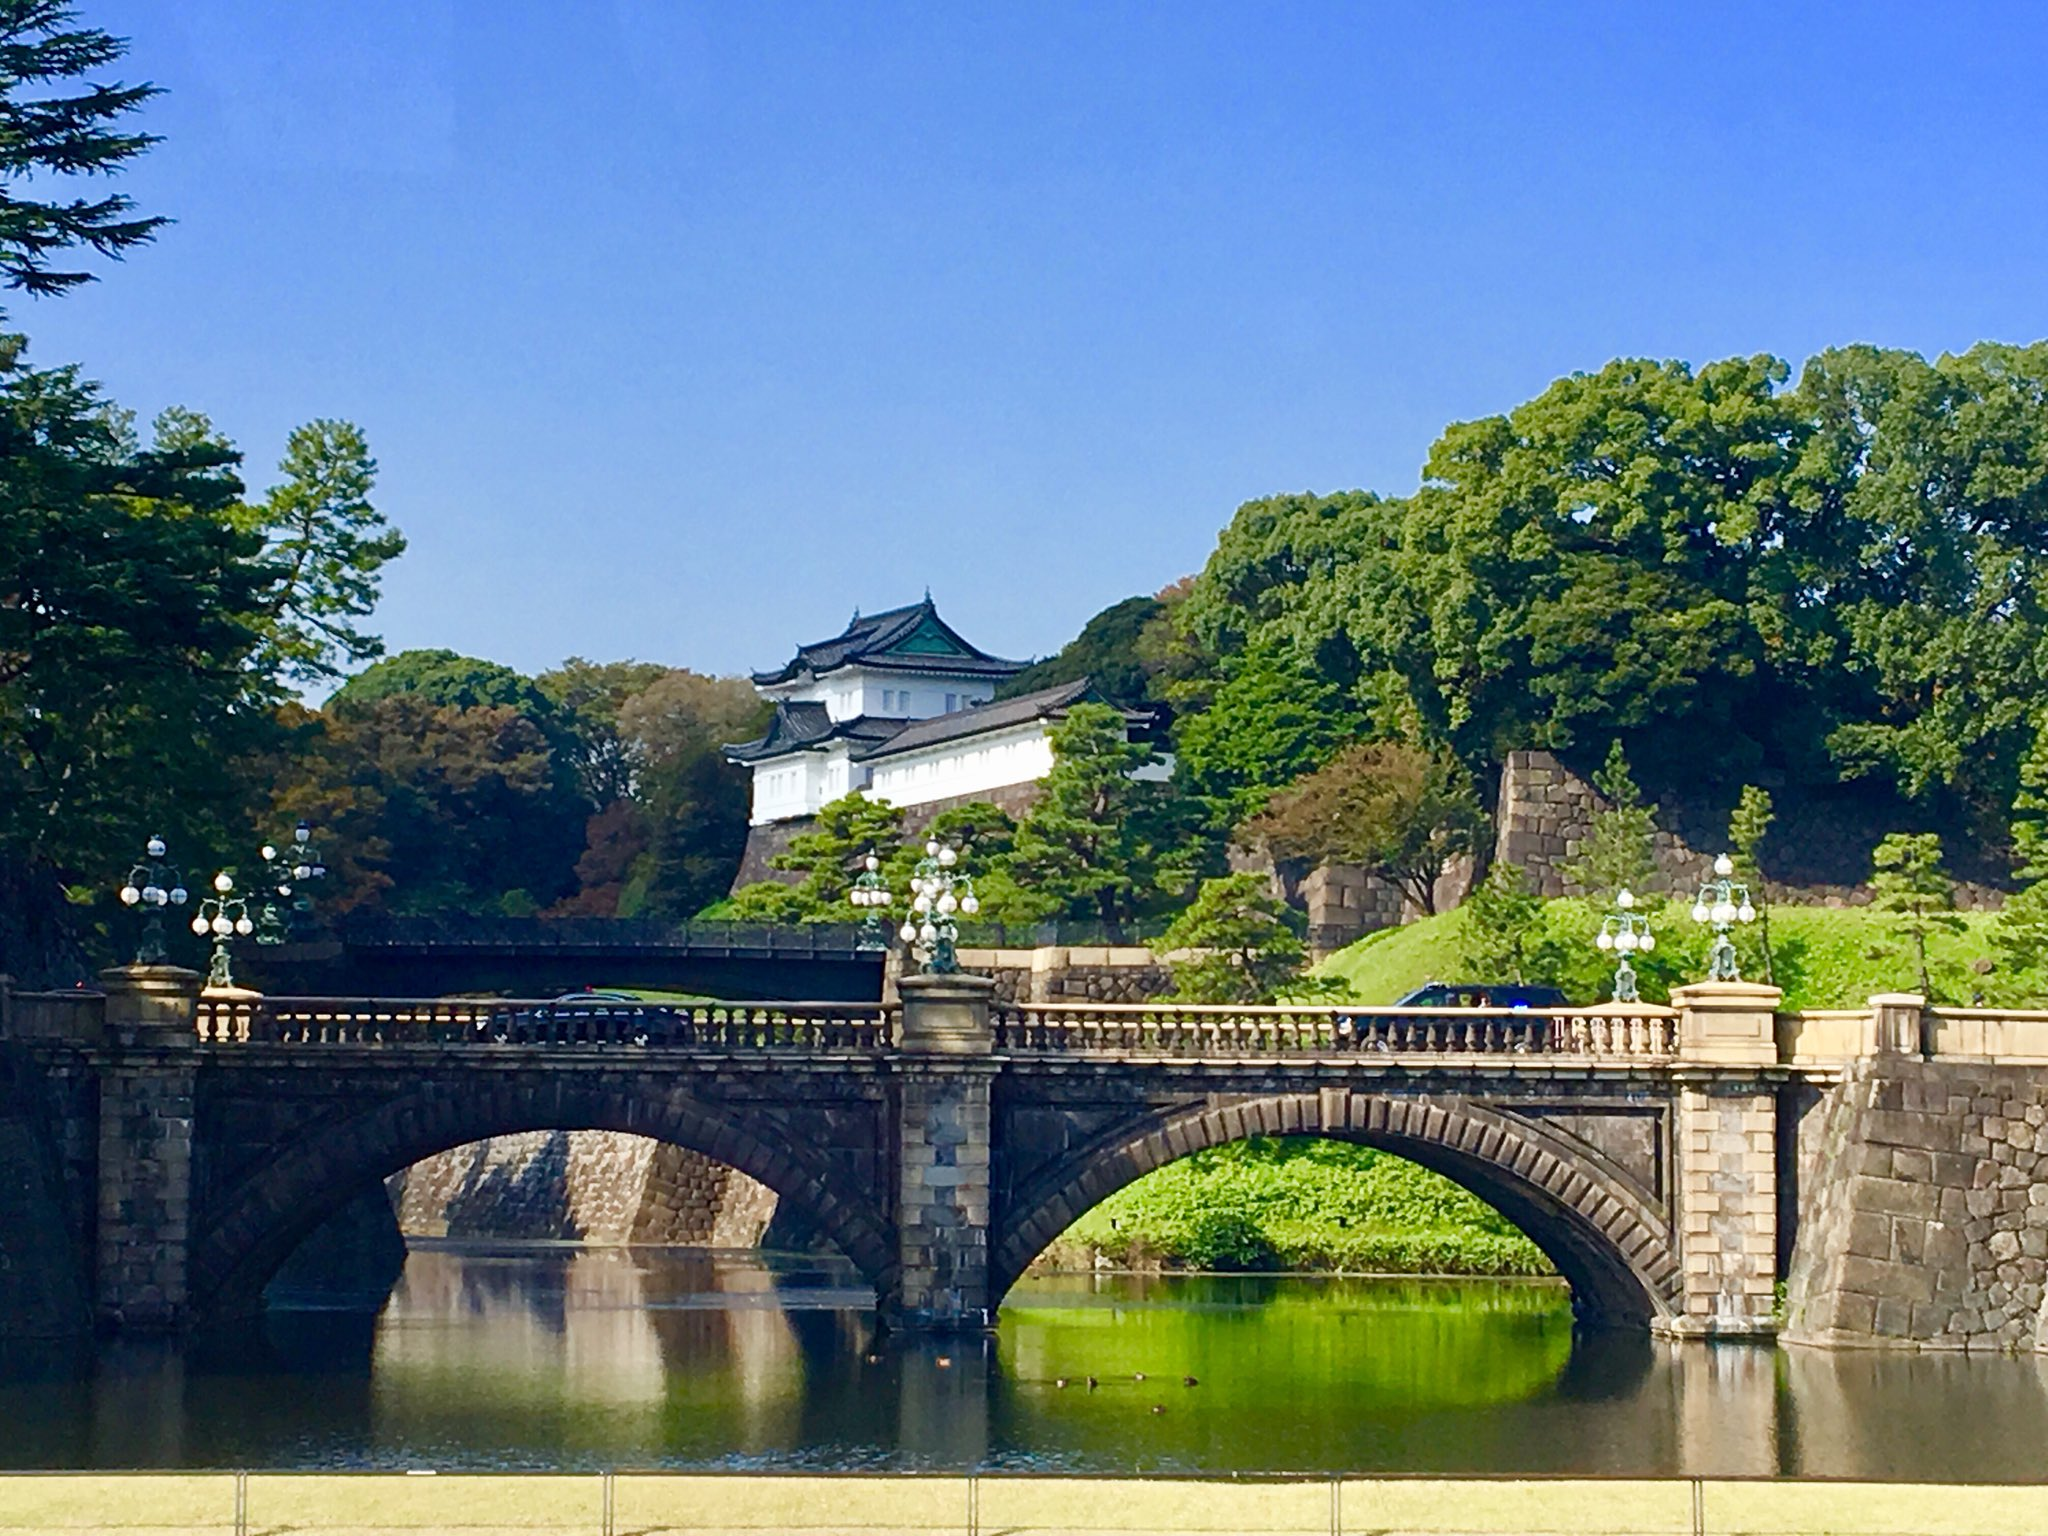 The Imperial Palace where @POTUS met with the Emperor and Empress of Japan. #POTUSInAsia https://t.co/MFV8skjVwF